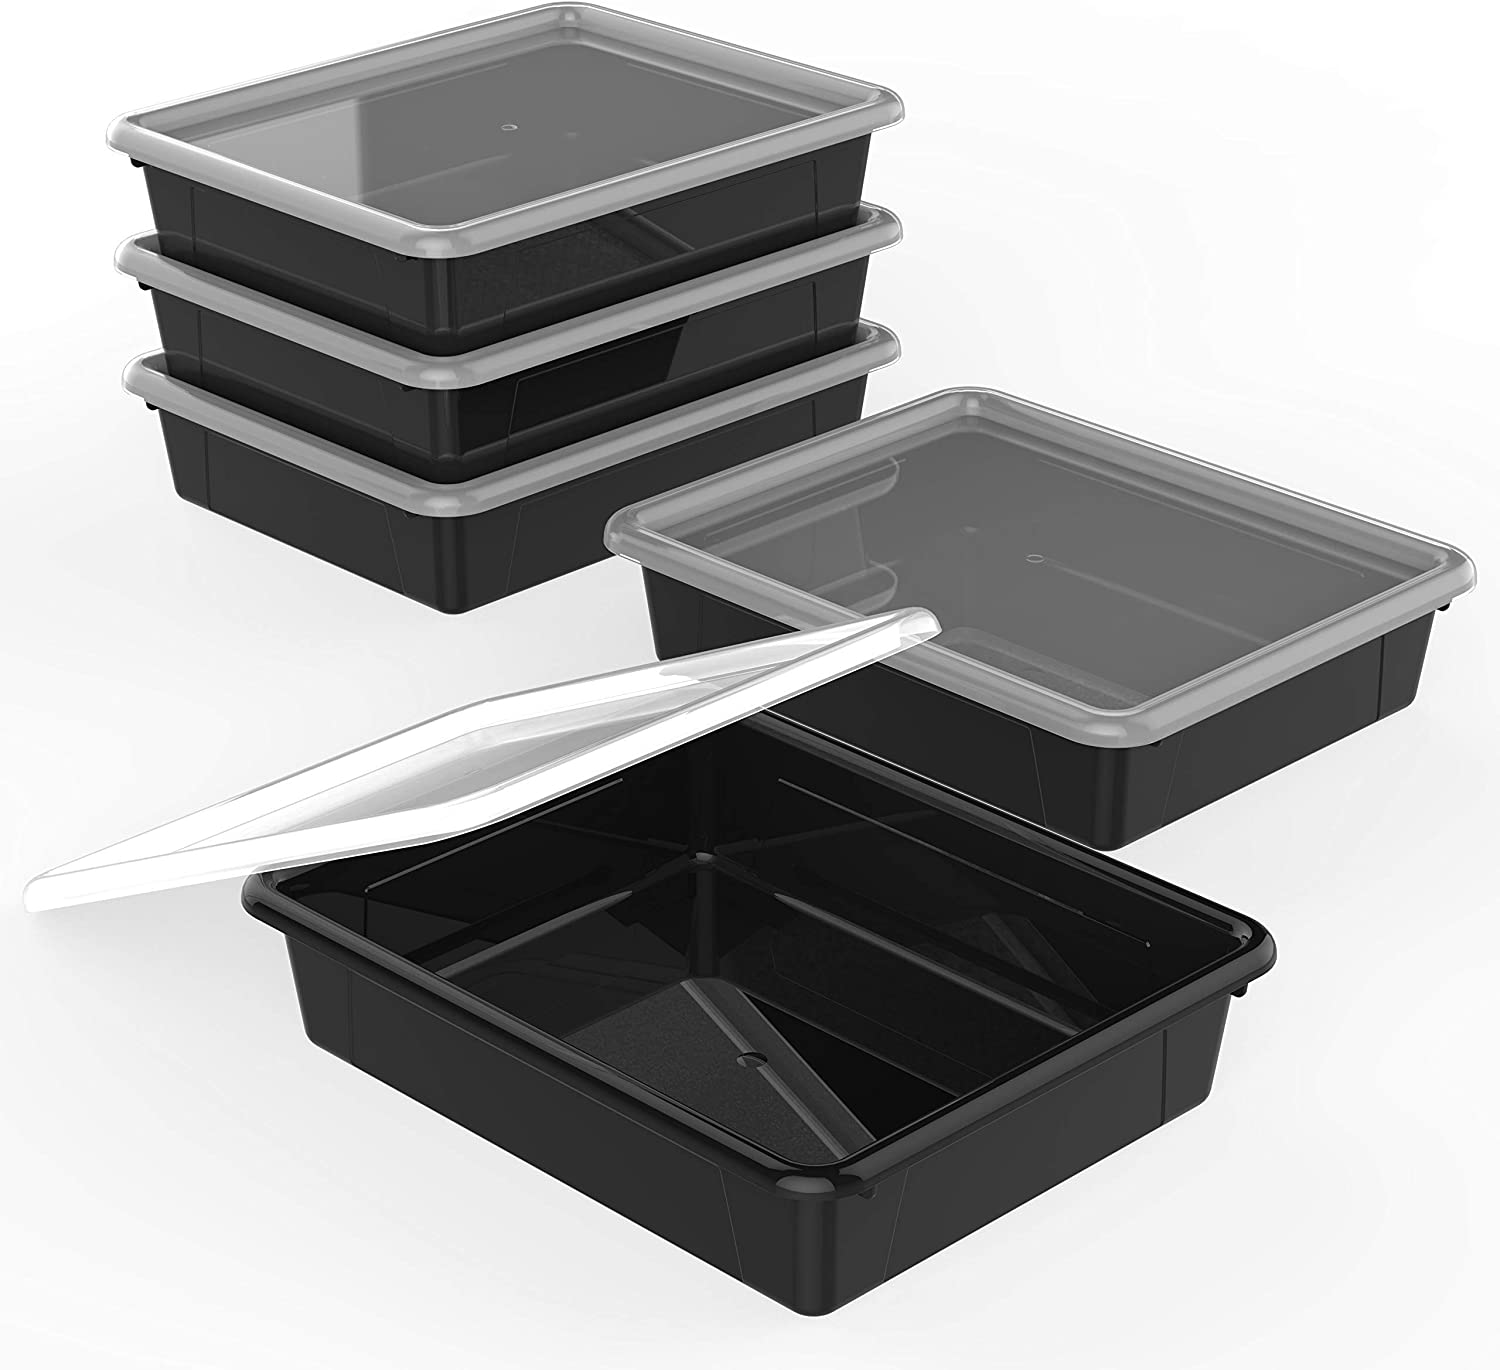 Storex Flat Storage Tray with Lid, Letter Size, 10 x 13 x 3 Inches, Black, 5-Pack (62535U05C)